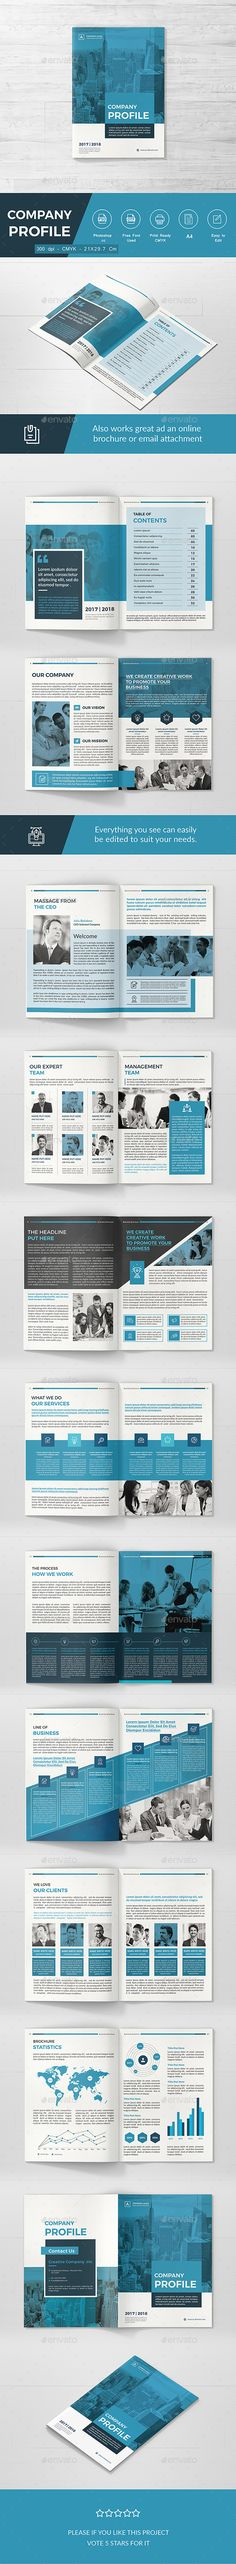 Brand Manual - InDesign Template u2022 Only available here! ➝   - how to manual template